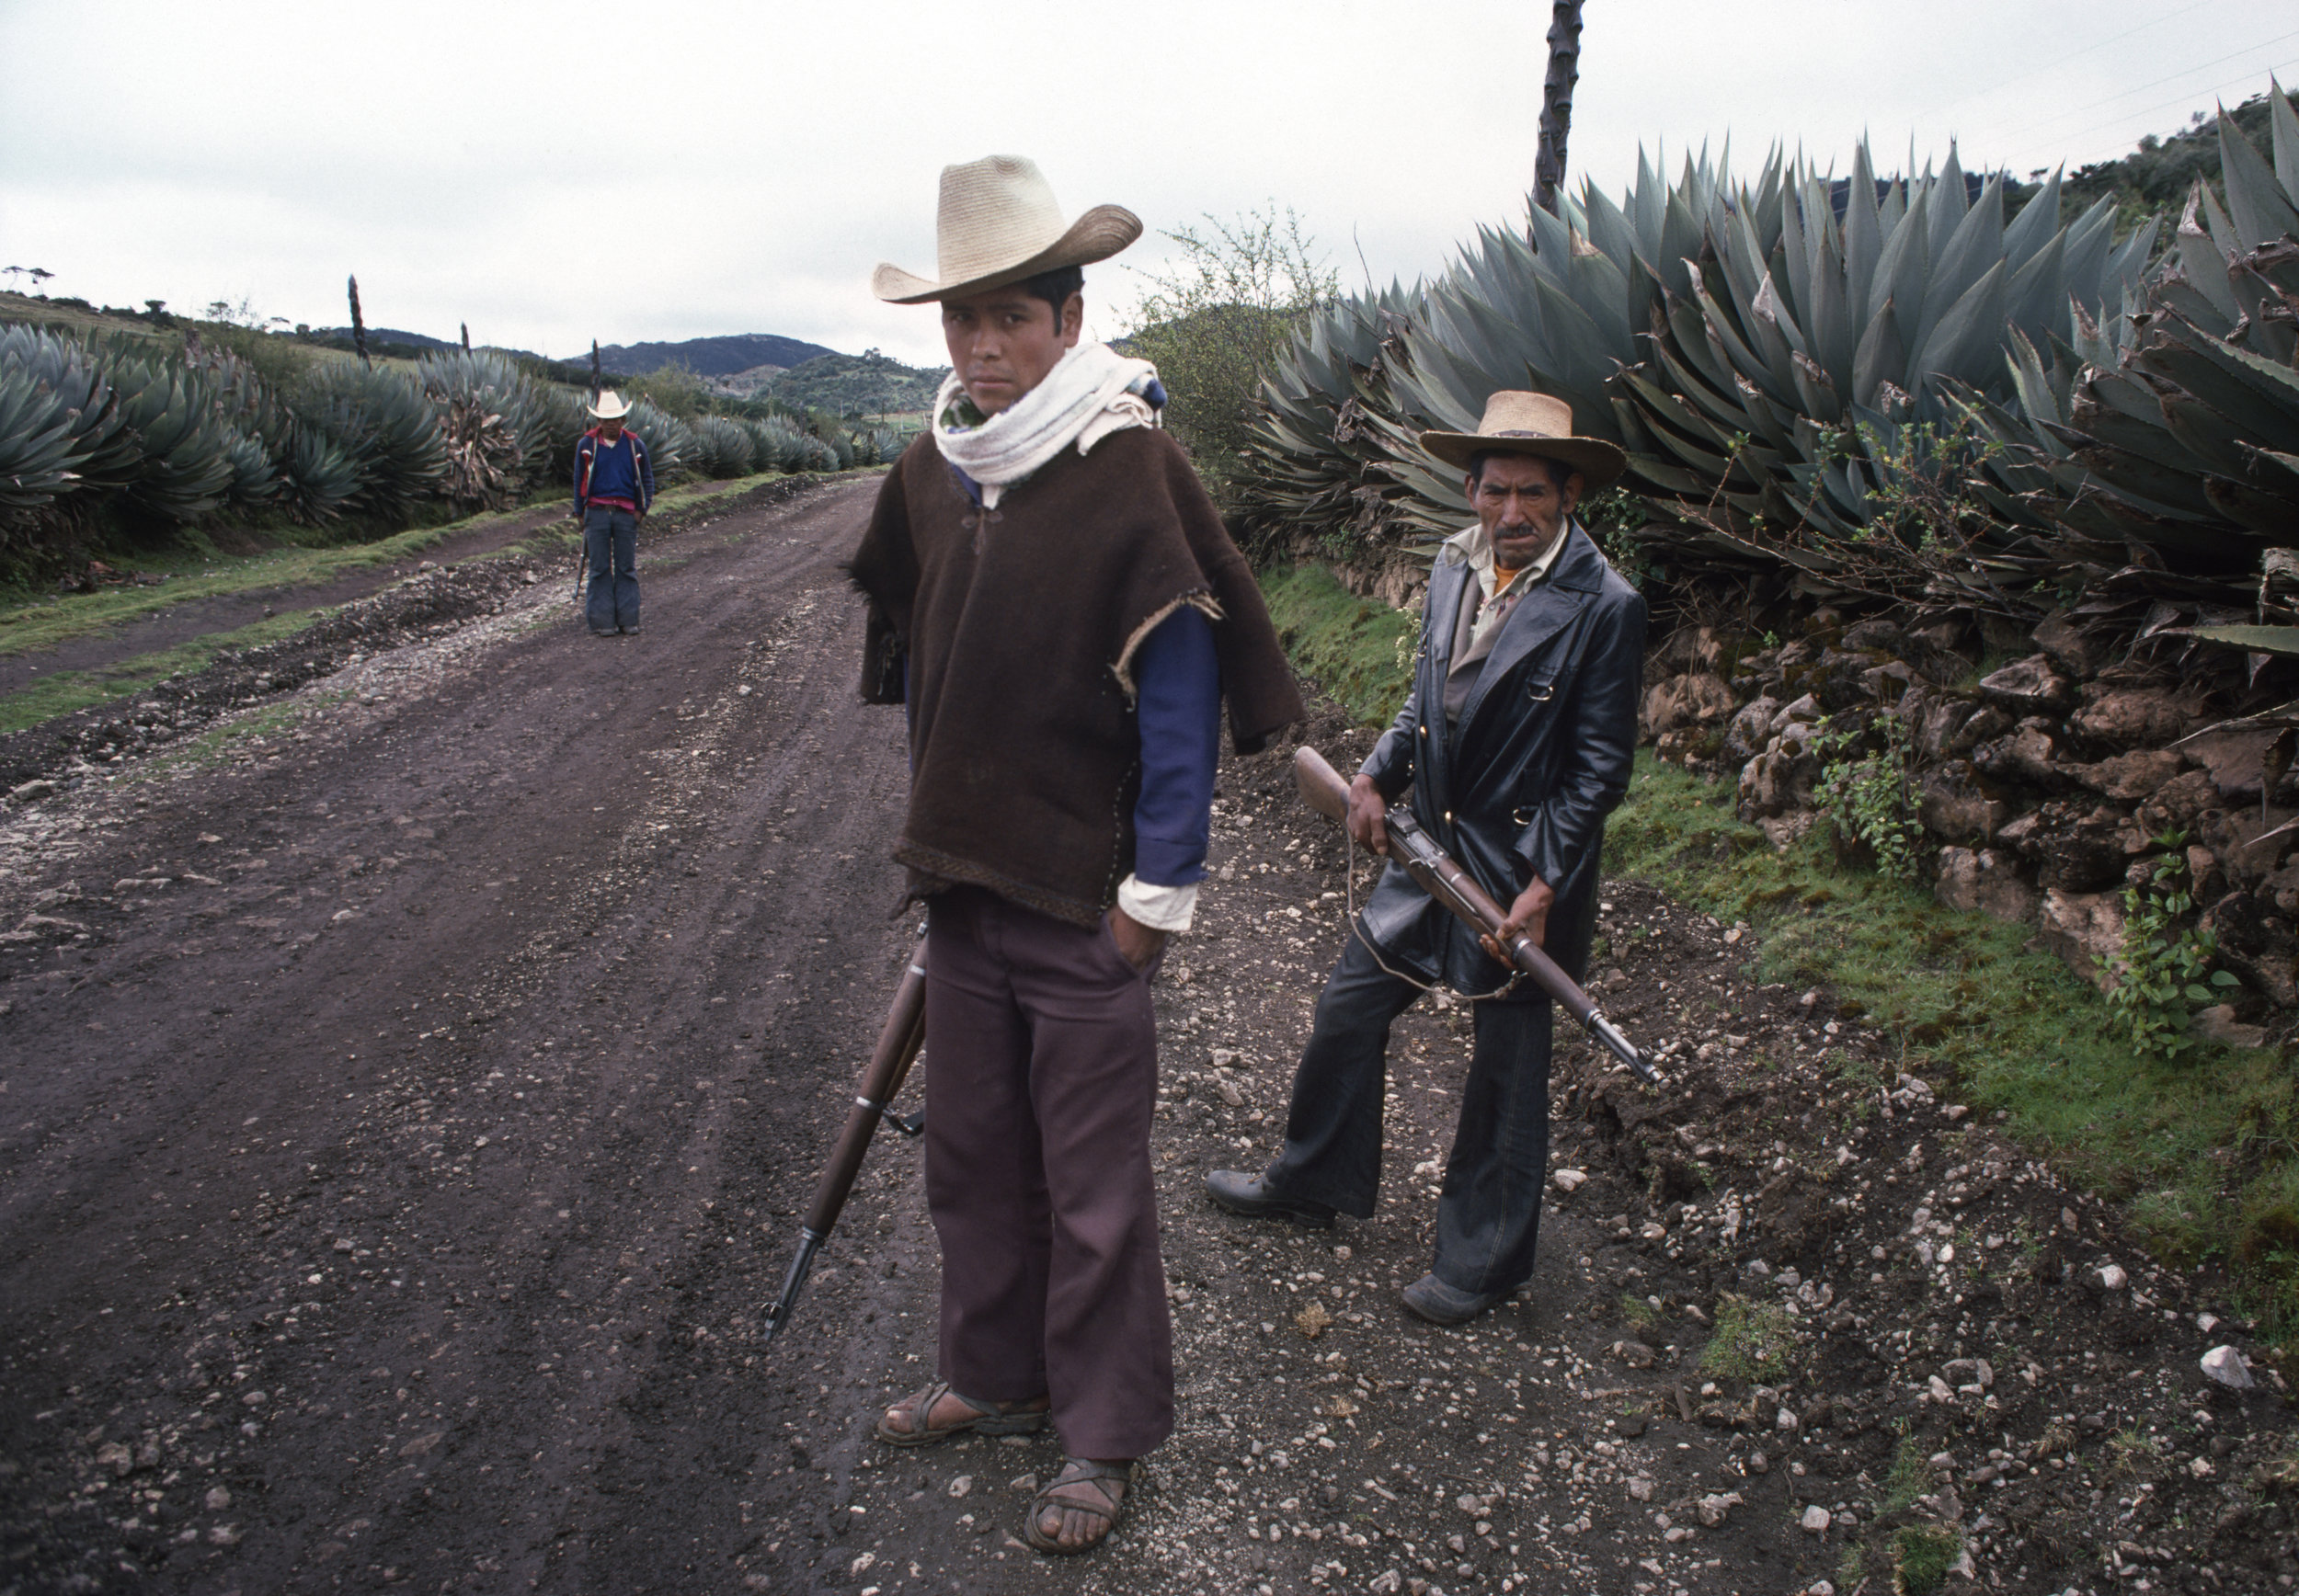 Local Civil Defense Patrol members patrol along a mountain road in rural Huehuetenango, Guatemala on September 1, 1982. The Civil Defense Patrols effectively institutionalized military power at the local level by infiltrating and dissolving community loyalties and reorienting them to serve counterinsurgency efforts. They served a critical role in the systemic violence, inequality, and militarization of the domestic armed conflict.